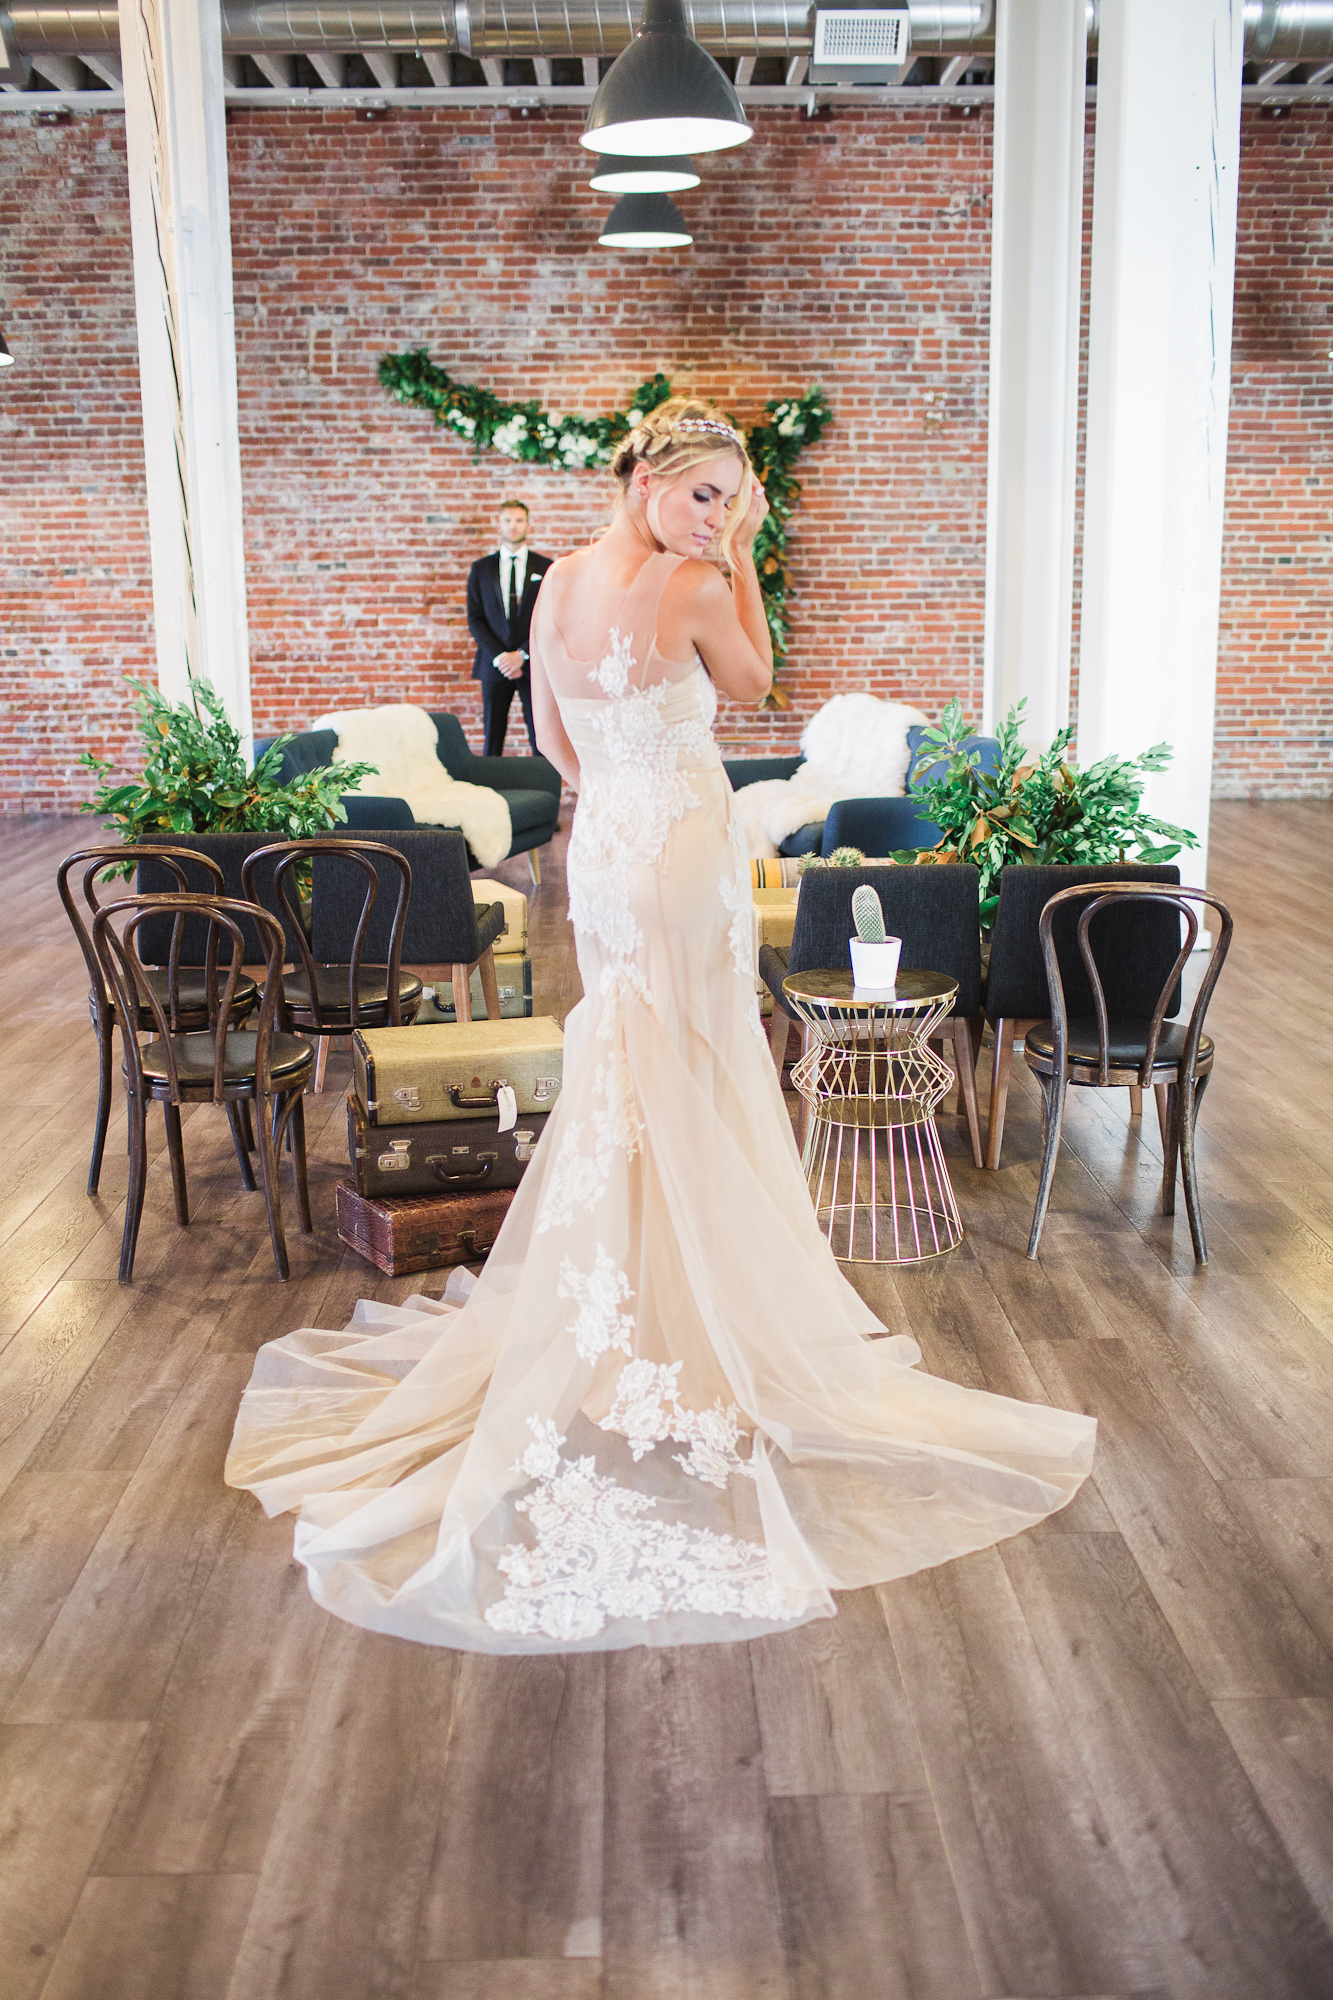 This wedding dress by  Lezu Atelier  is one of my favorites by far!